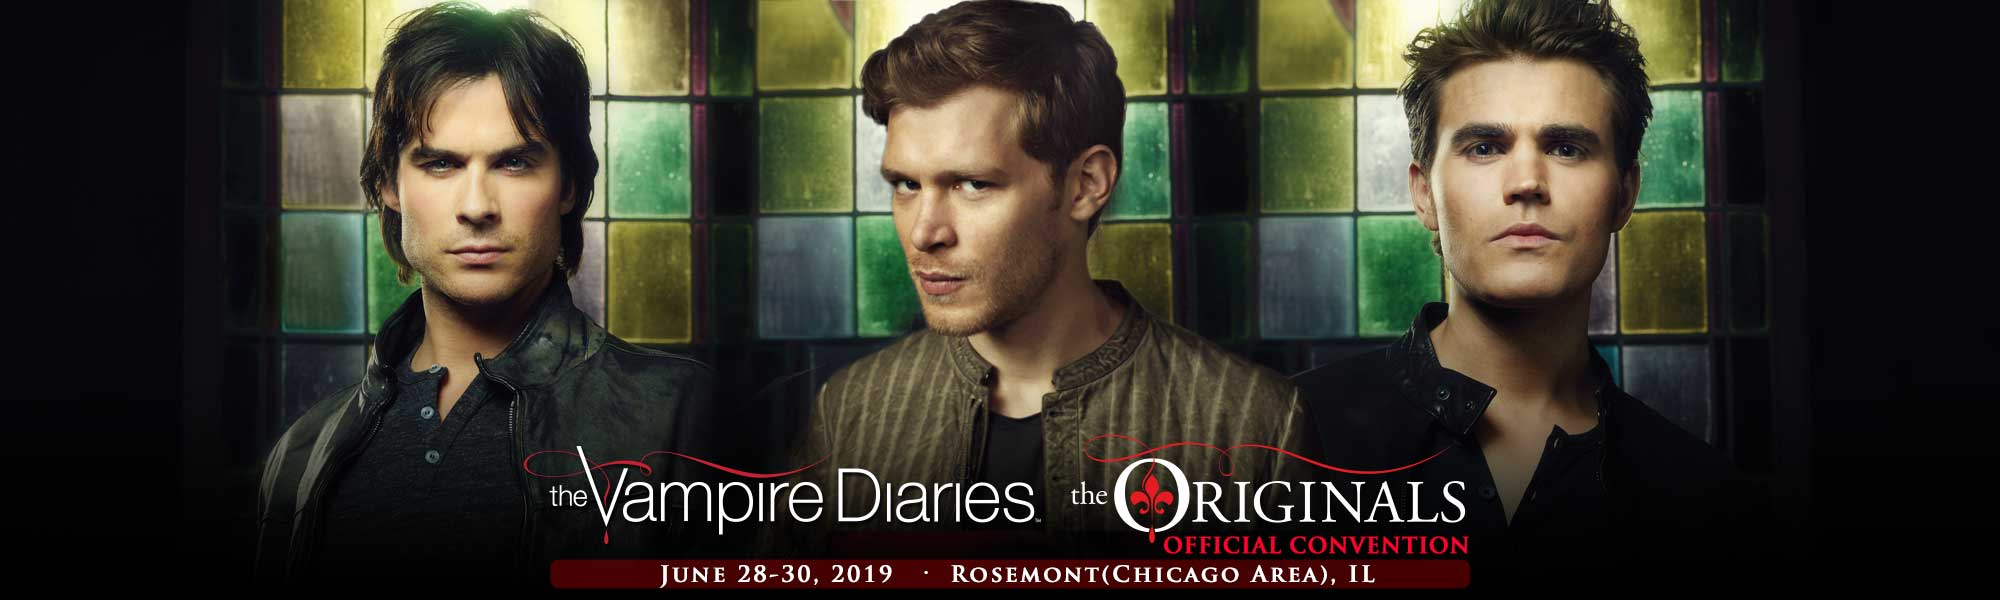 reputable site 9c936 42d54 The Vampire Diaries and The Originals Official Convention Chicago, IL June  28-20,